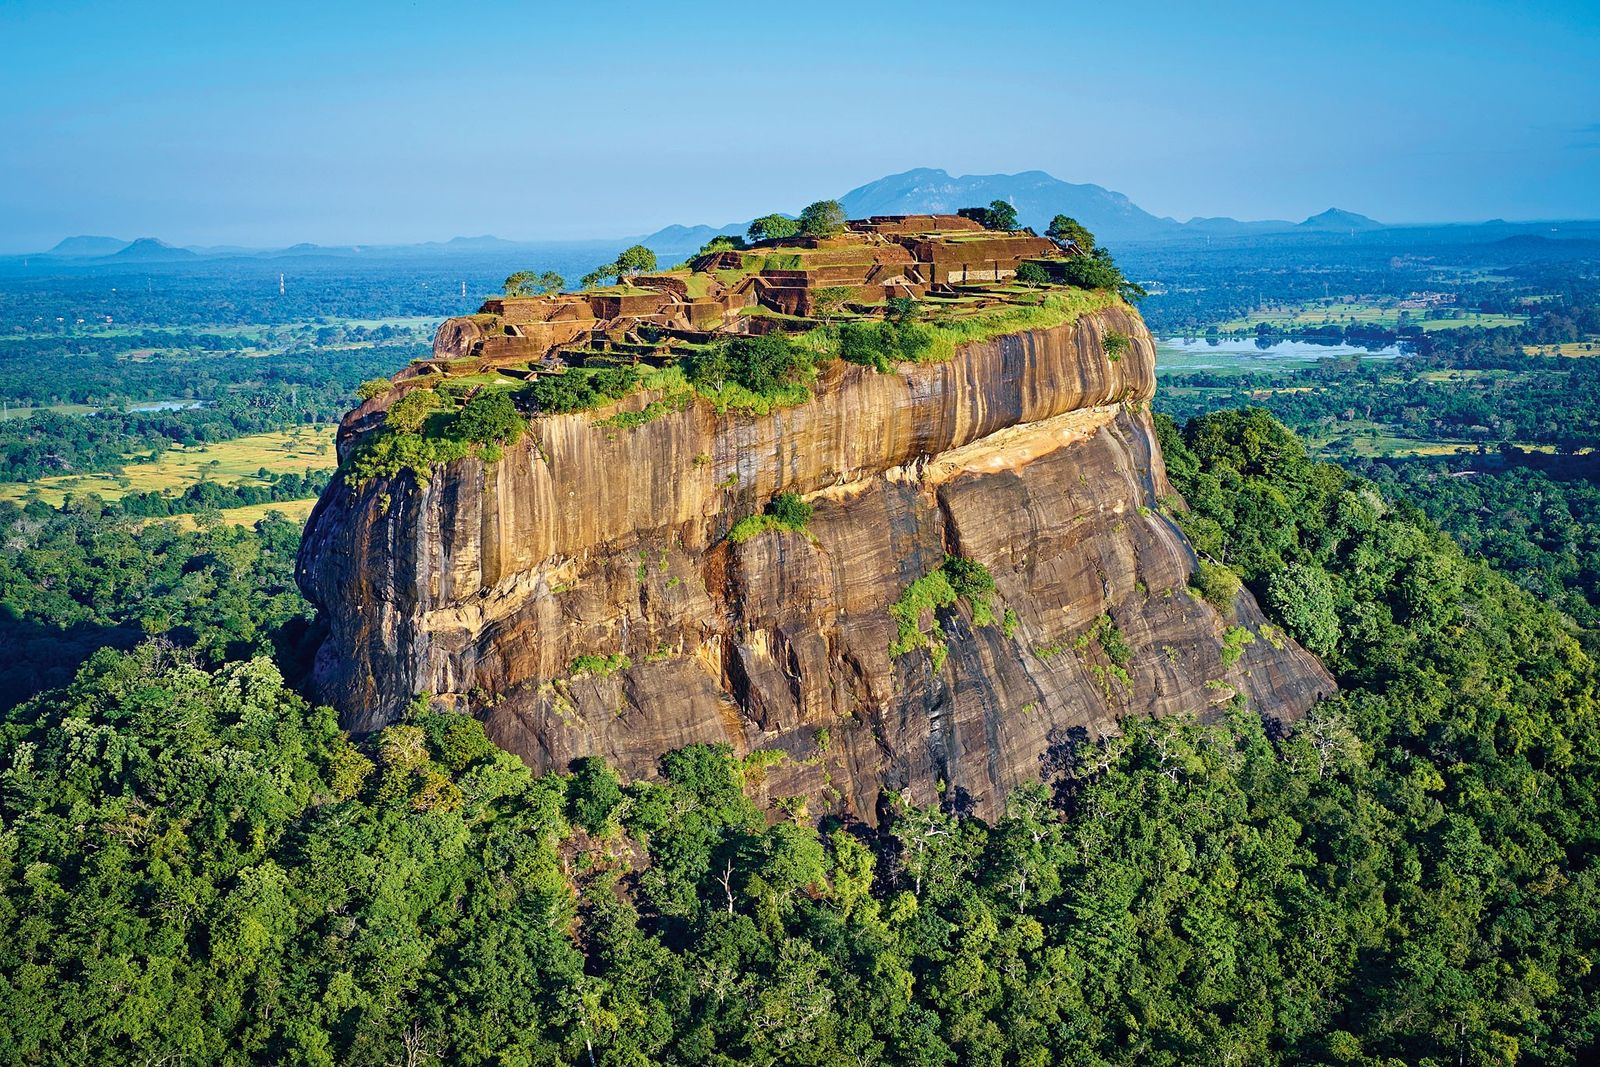 The 'Lion Fortress' of Sri Lanka was swallowed by the jungle